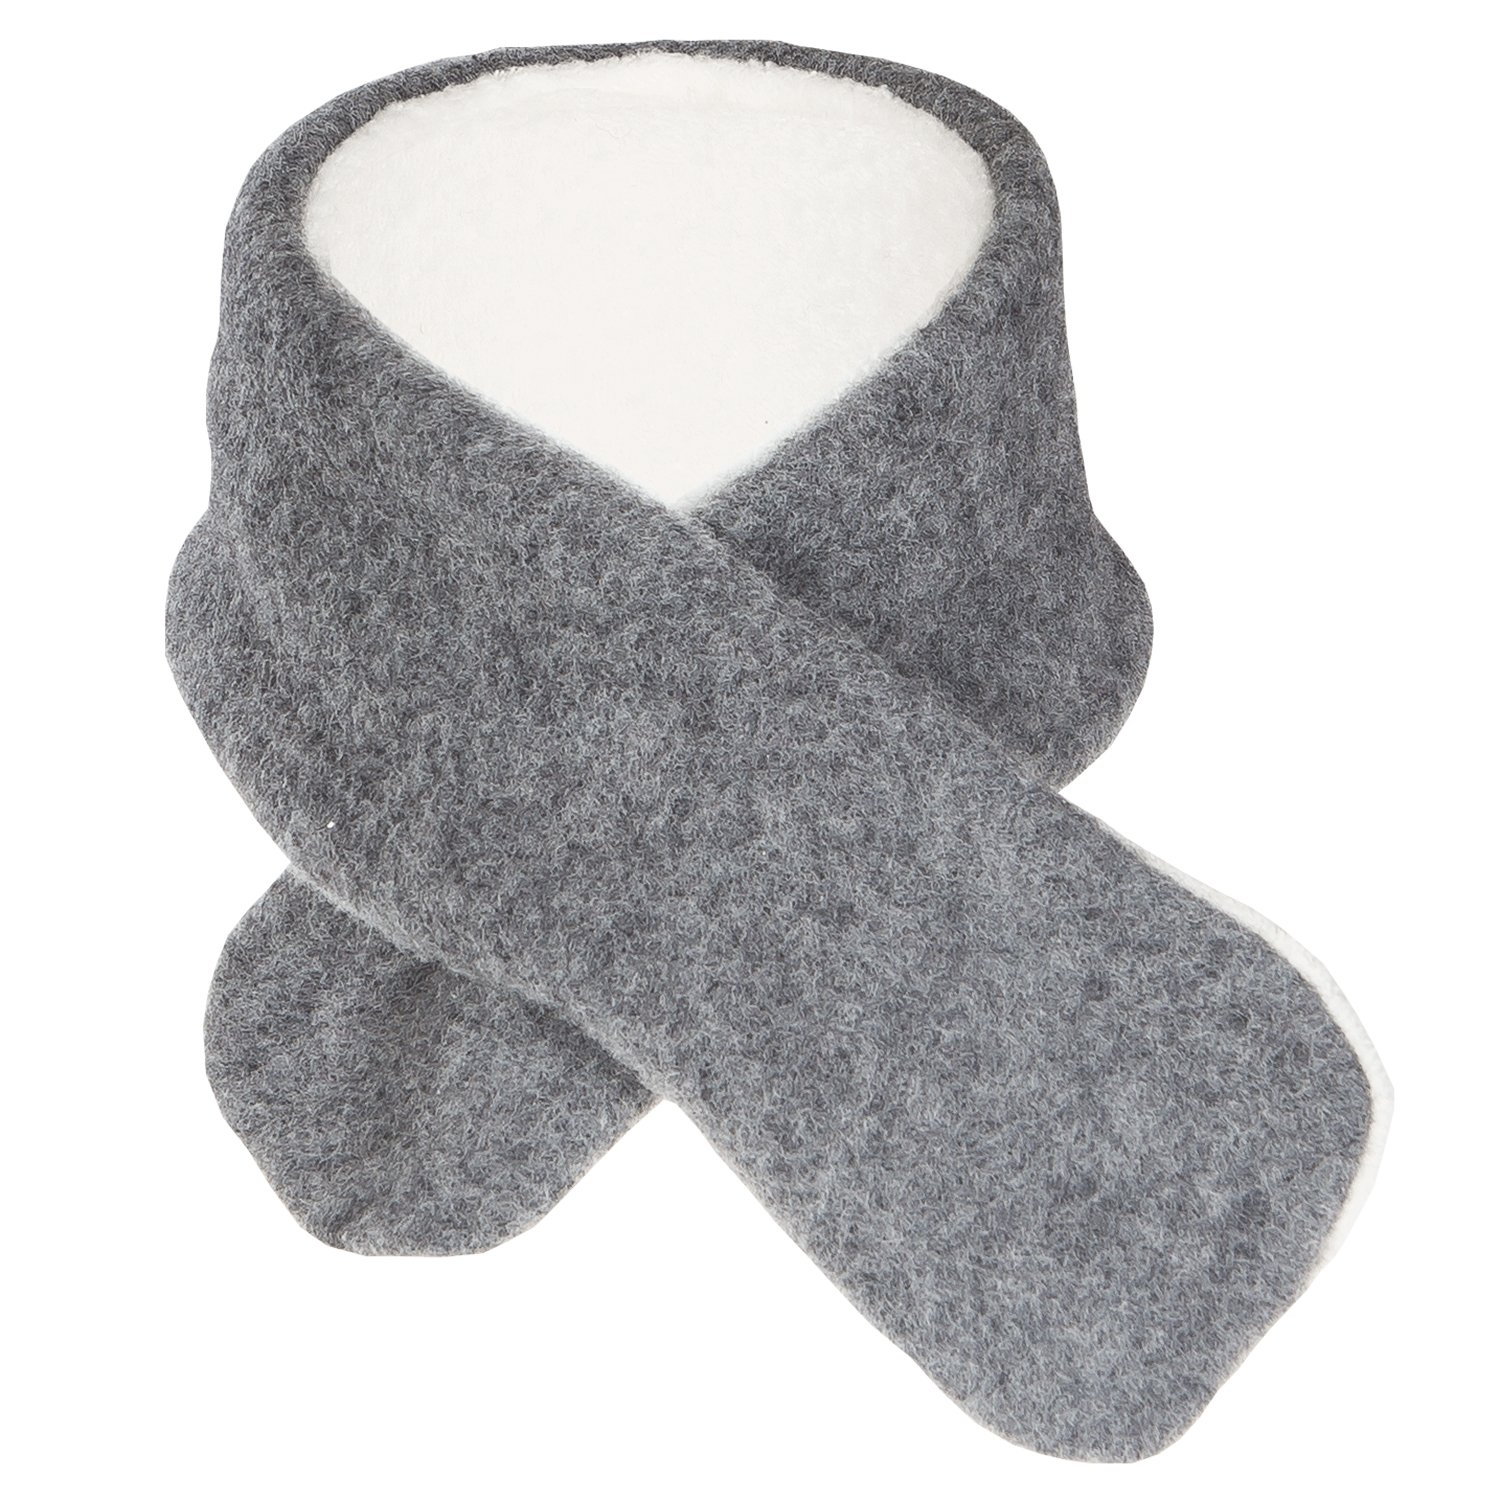 Kids Winter Neck Scarf: Organic Merino Wool and Cotton Sherpa, Size 1 to 6 years Size 1 to 6 years (Berry) Reiff 200410-WOOL-COTTON-HAT-KIDS